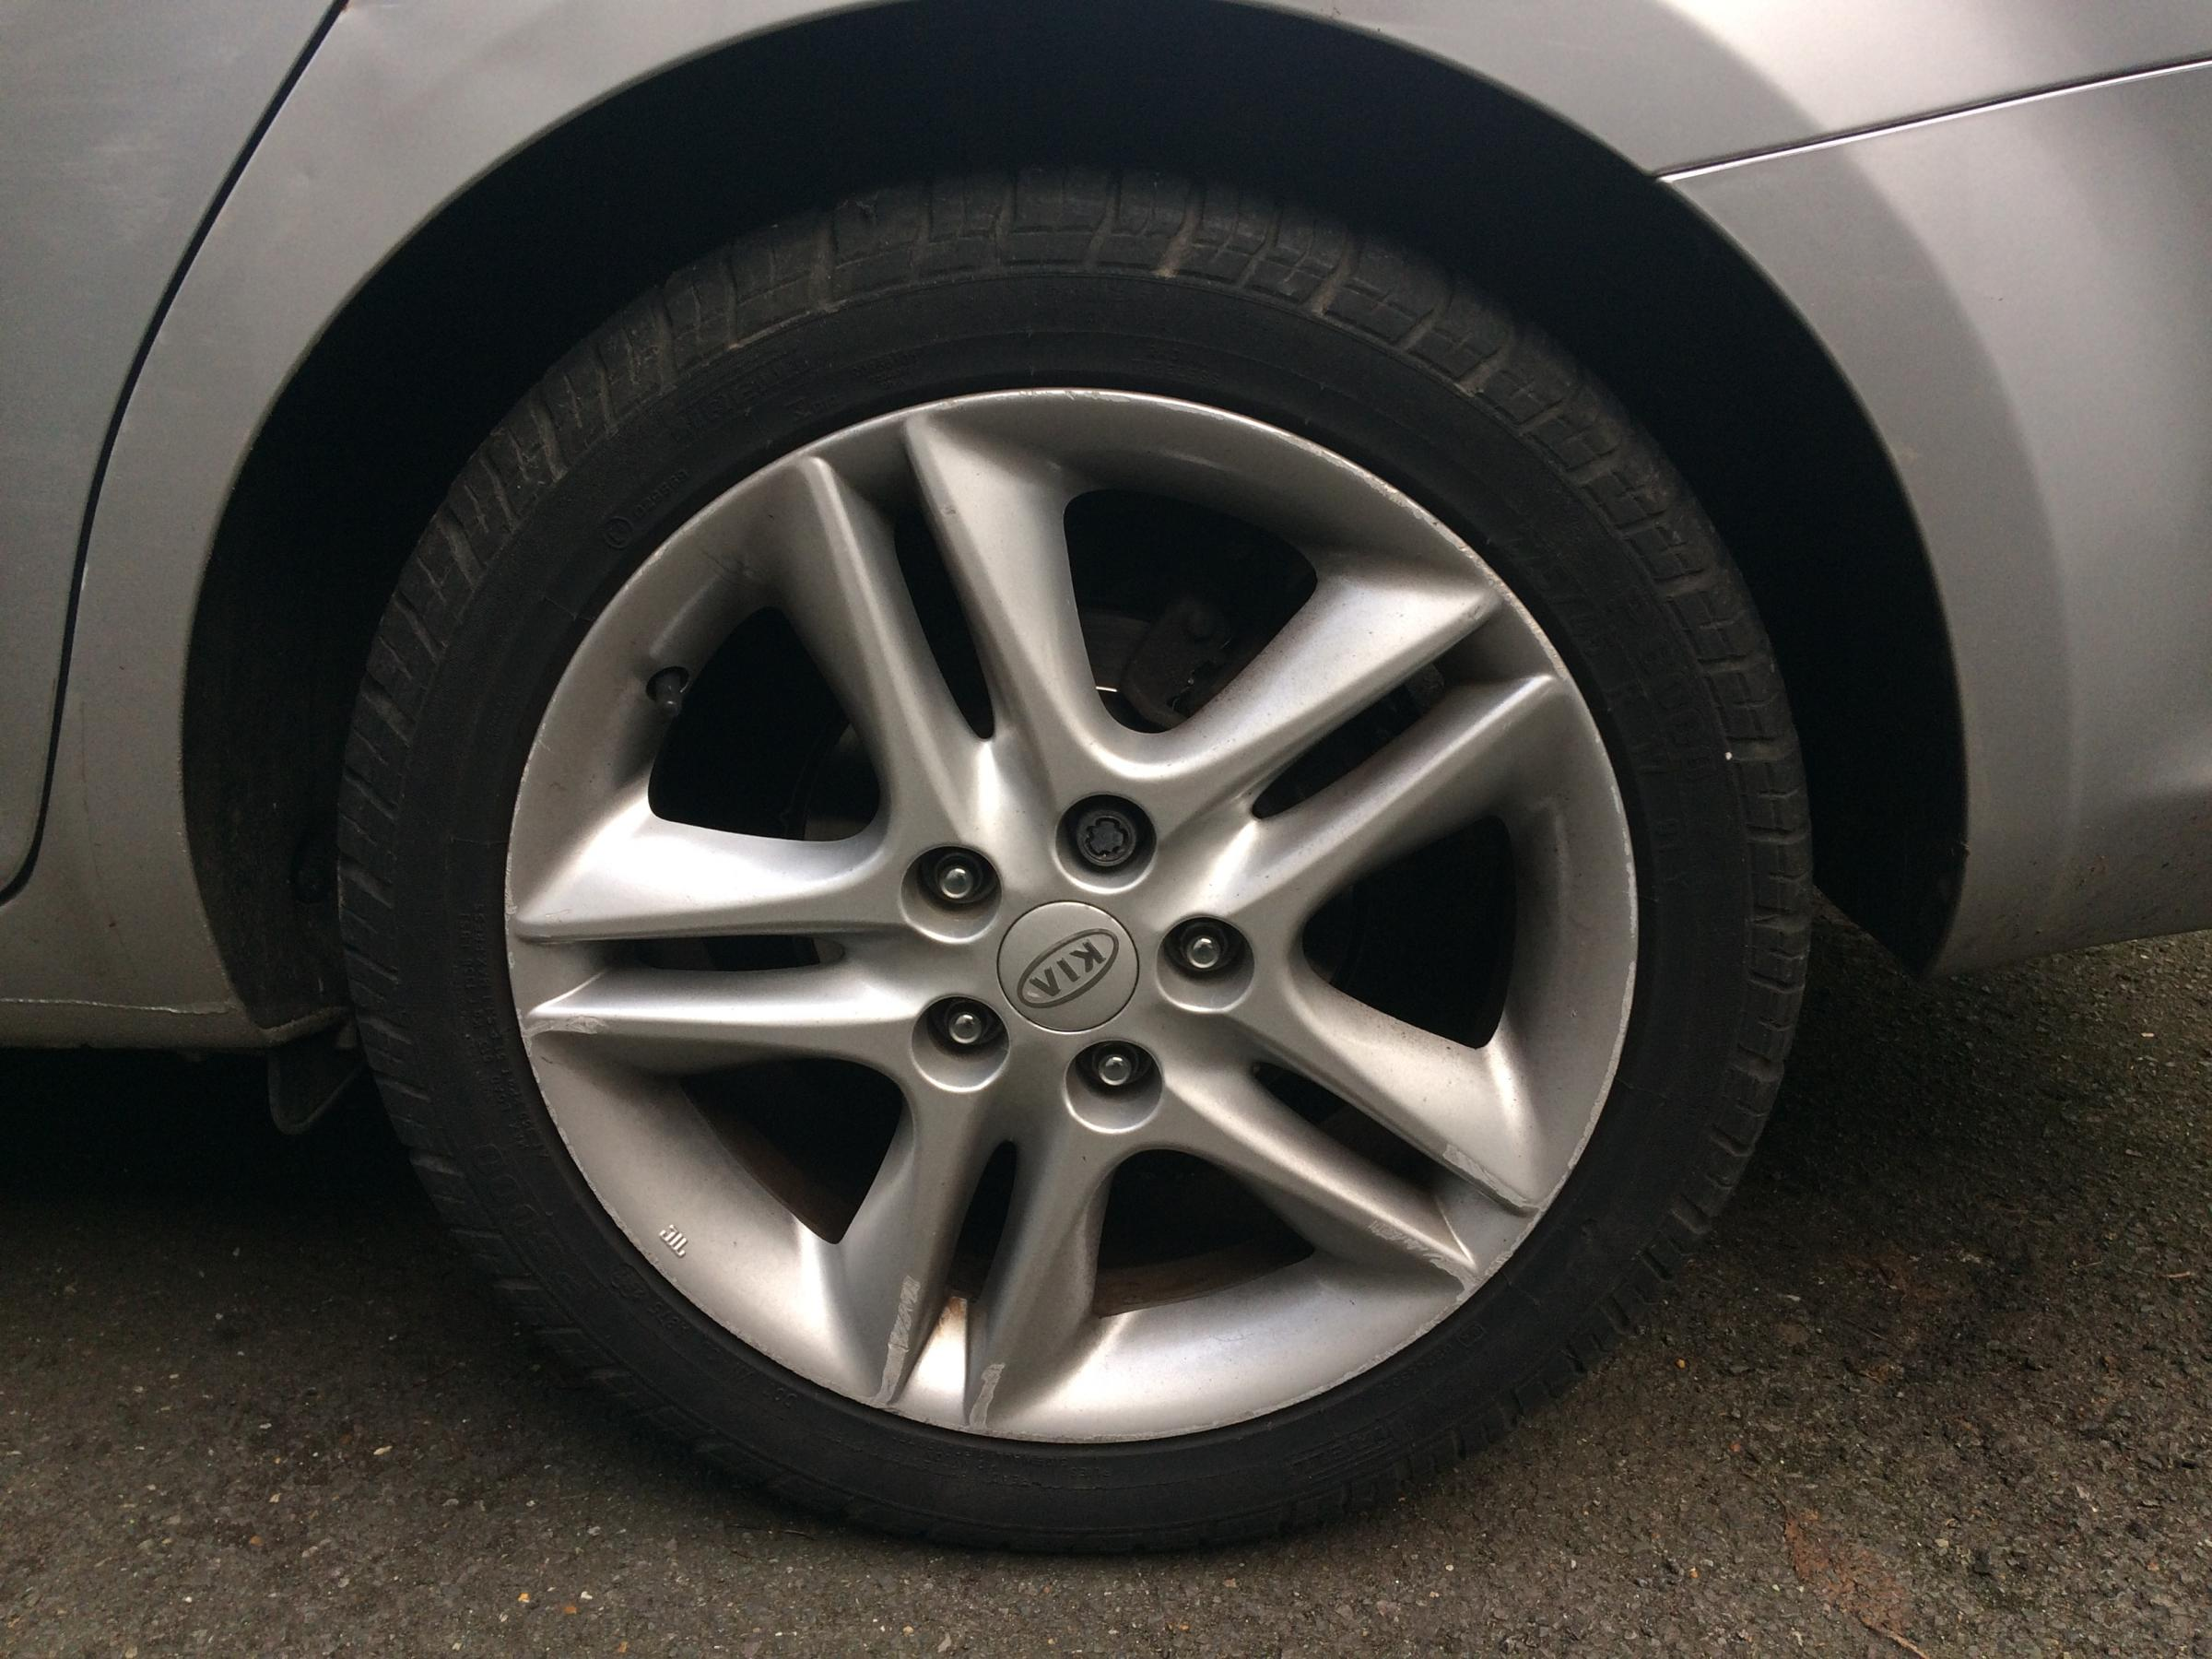 Car tyres punctured in Shiplake with four-inch masonry nails